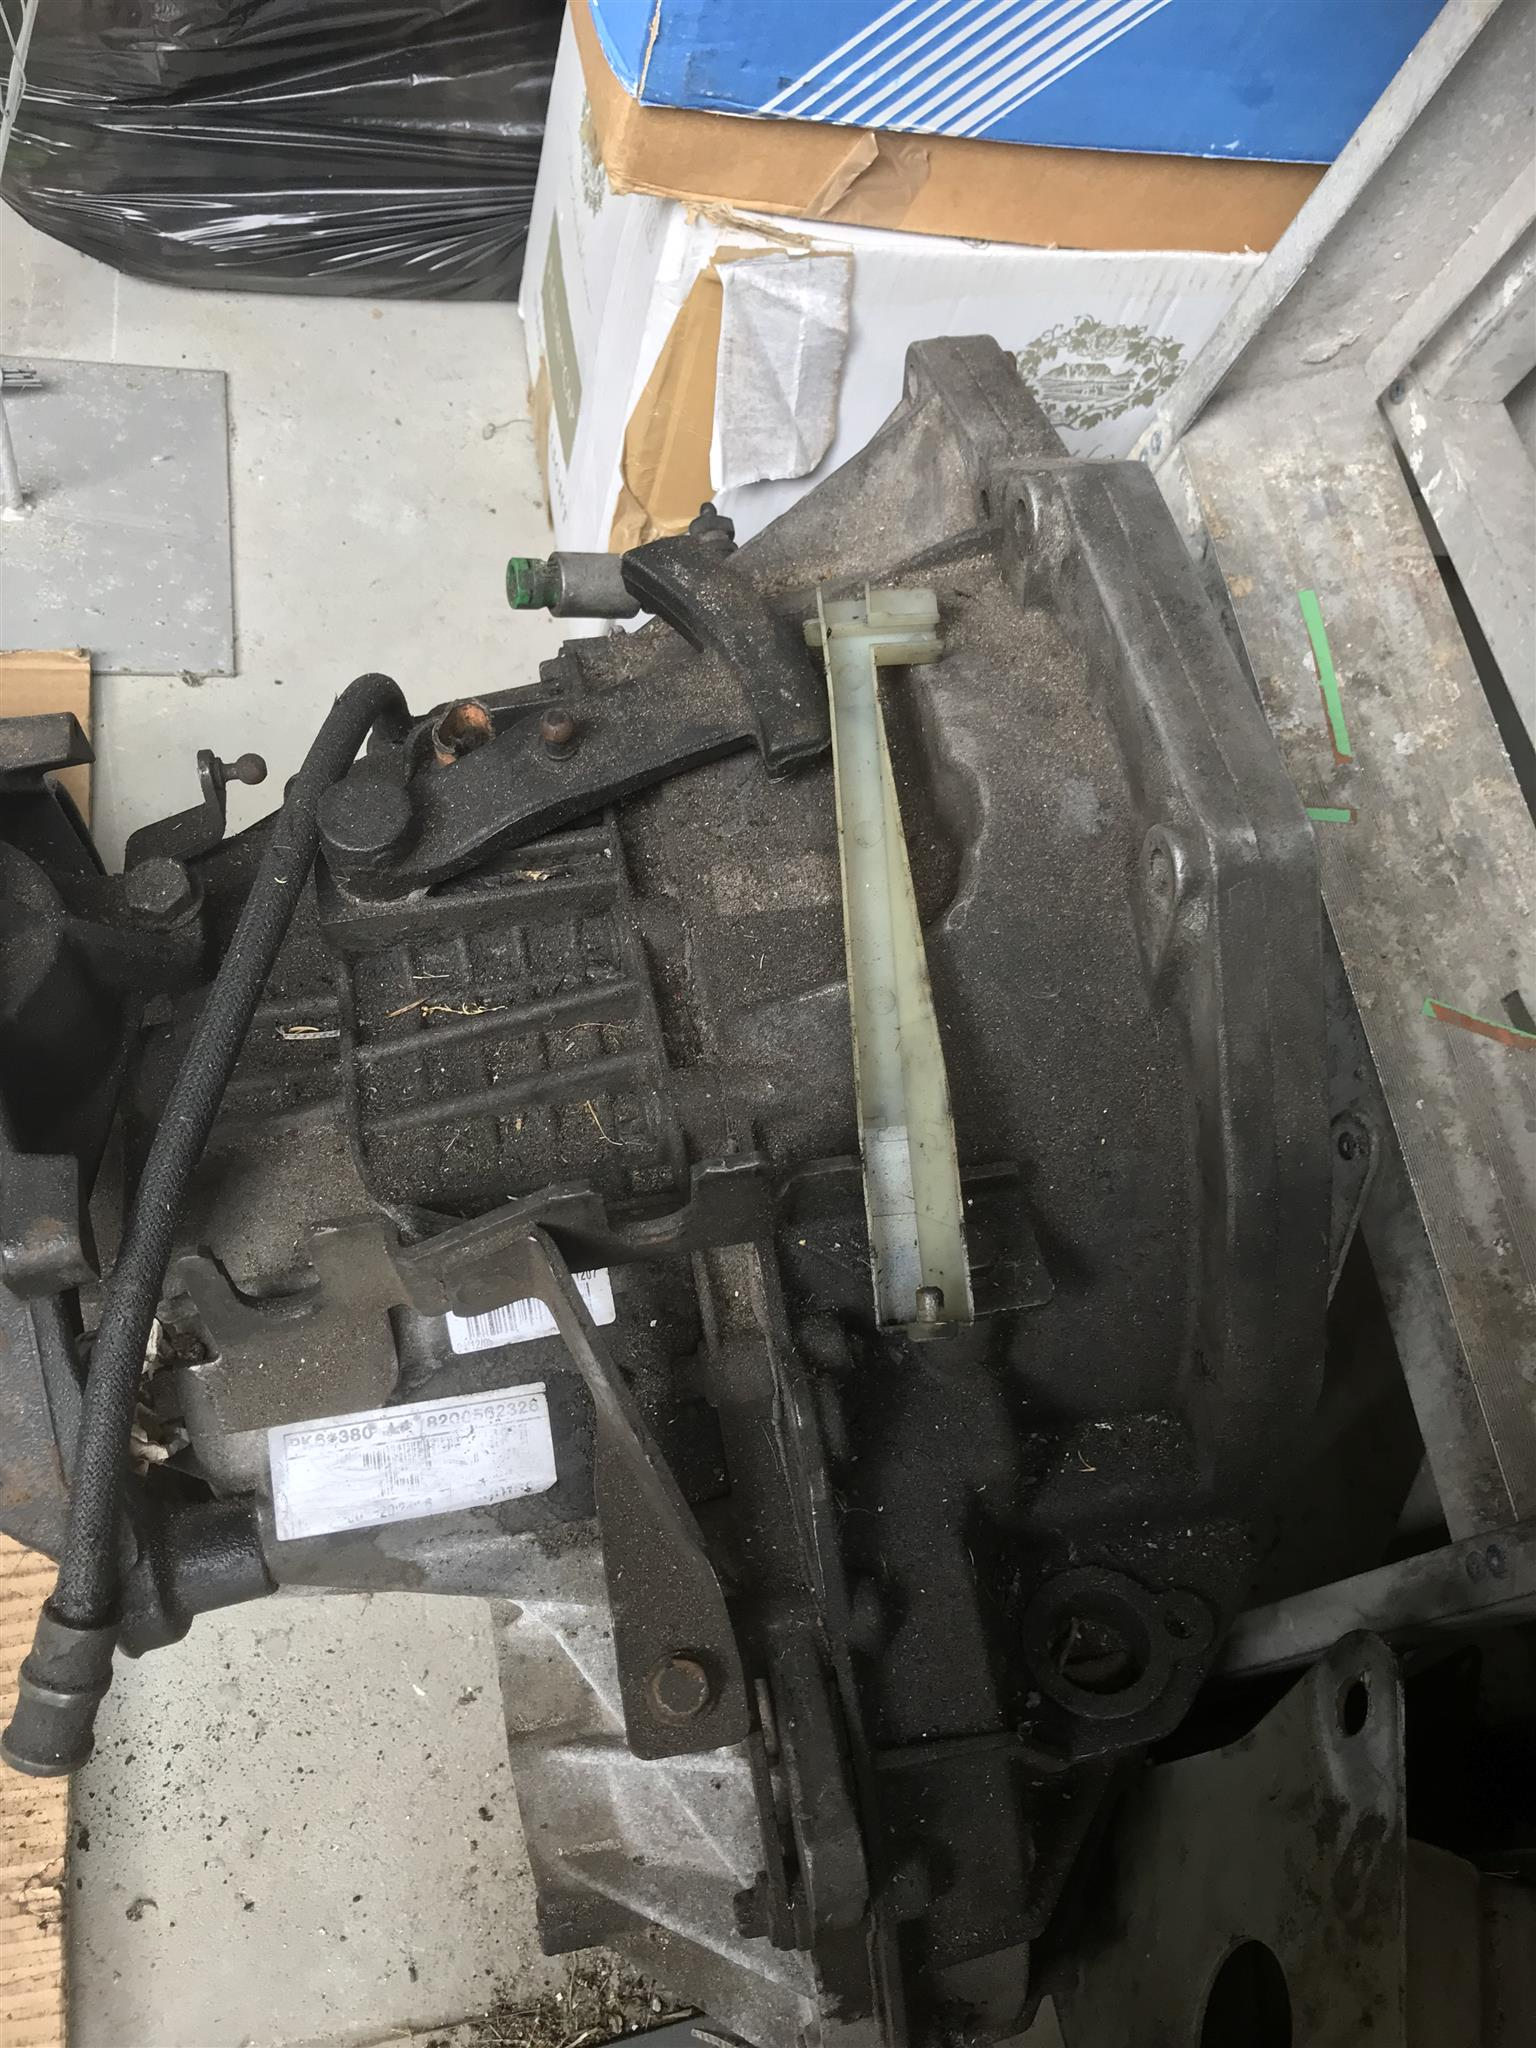 2006 Nissan Interstar DCi engine and gearbox spares